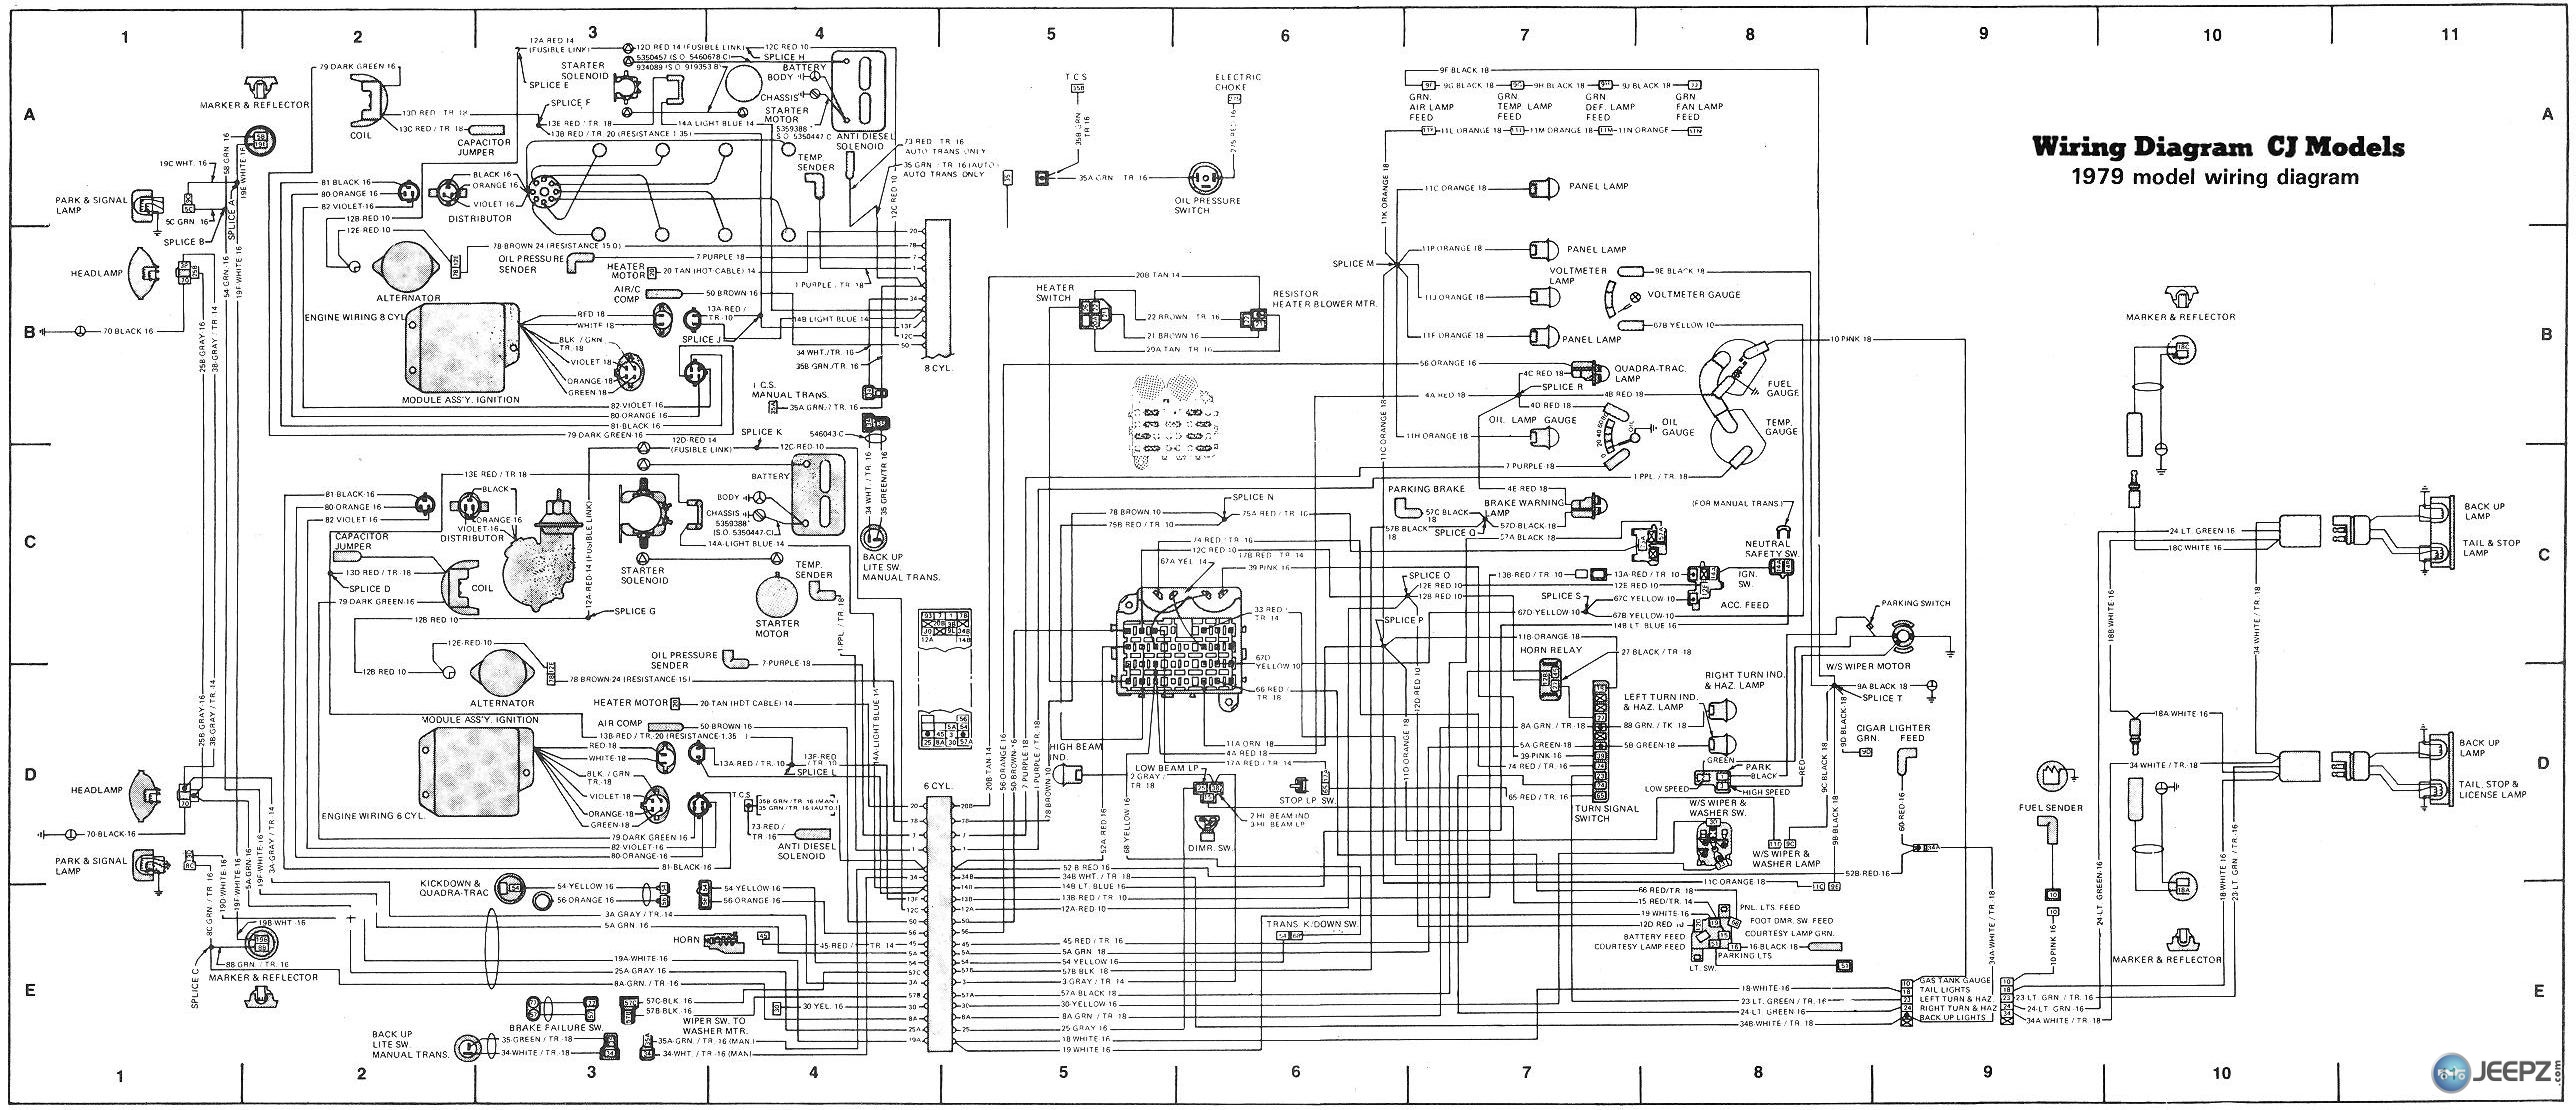 Fine Wiring Diagram For Cj8 Blog Diagram Schema Wiring Cloud Geisbieswglorg